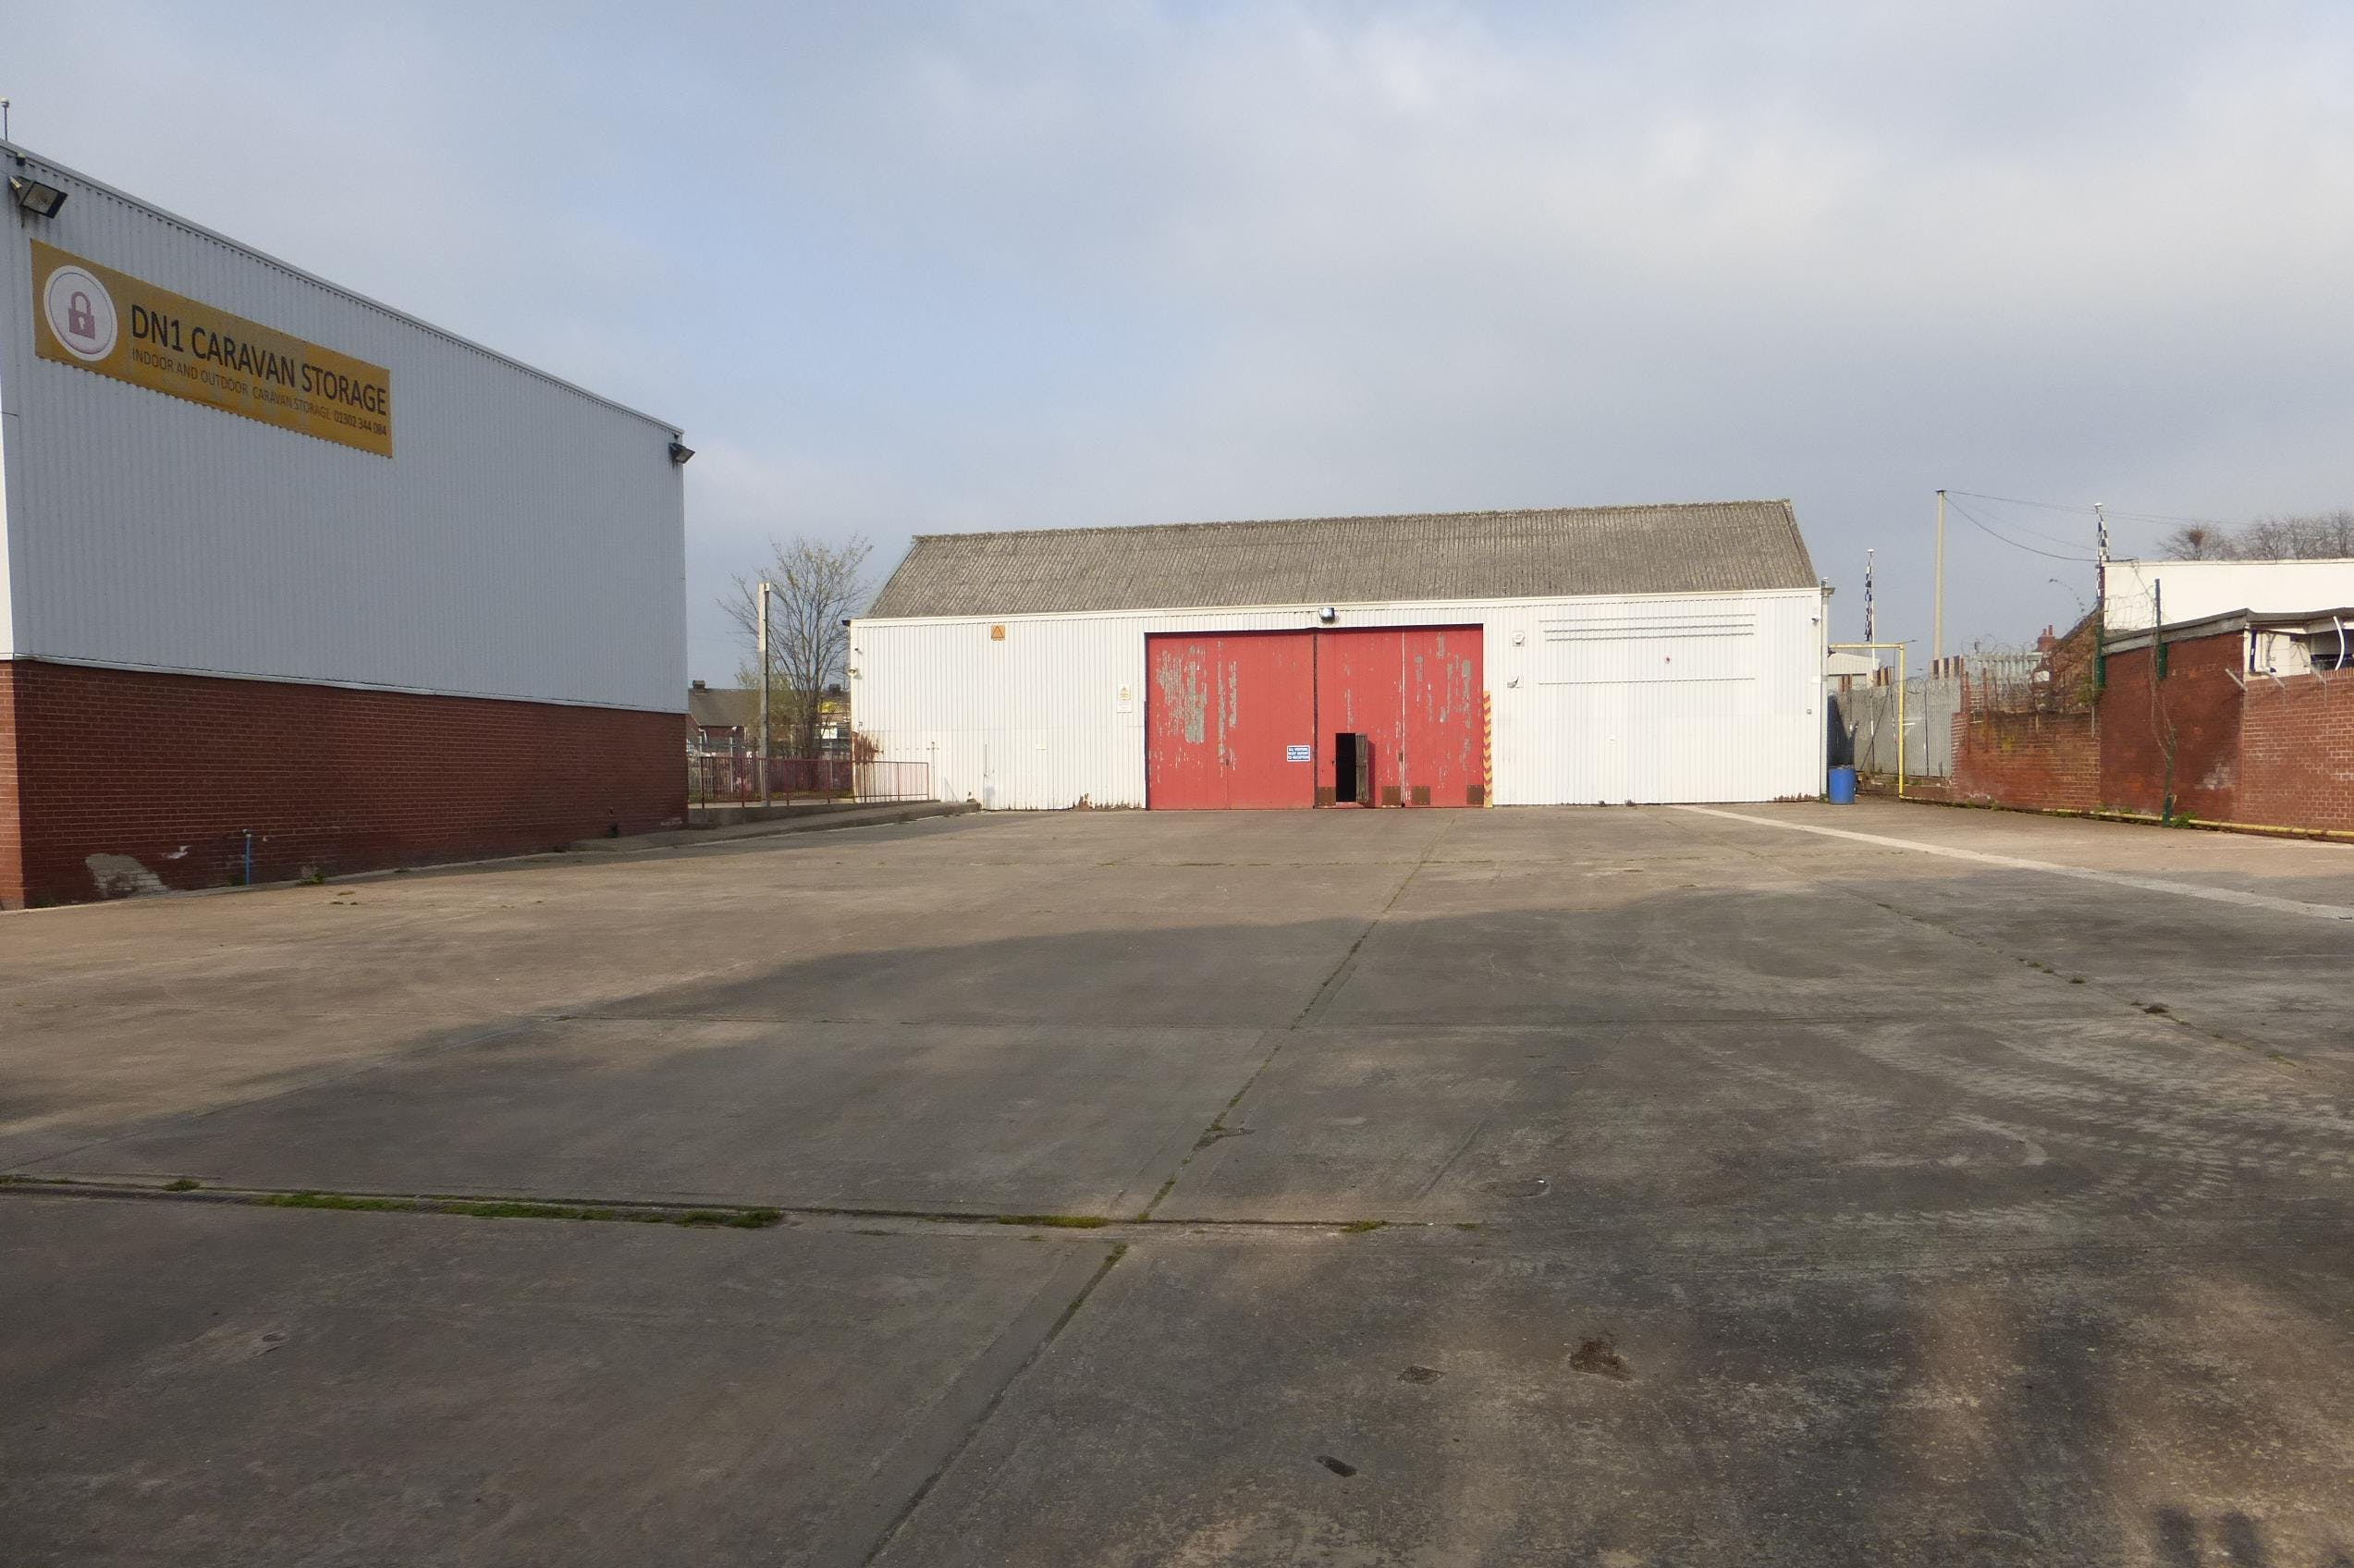 Milethorn Works, Milethorn Lane, Doncaster, Warehouse & Industrial To Let - Front elevation and yard